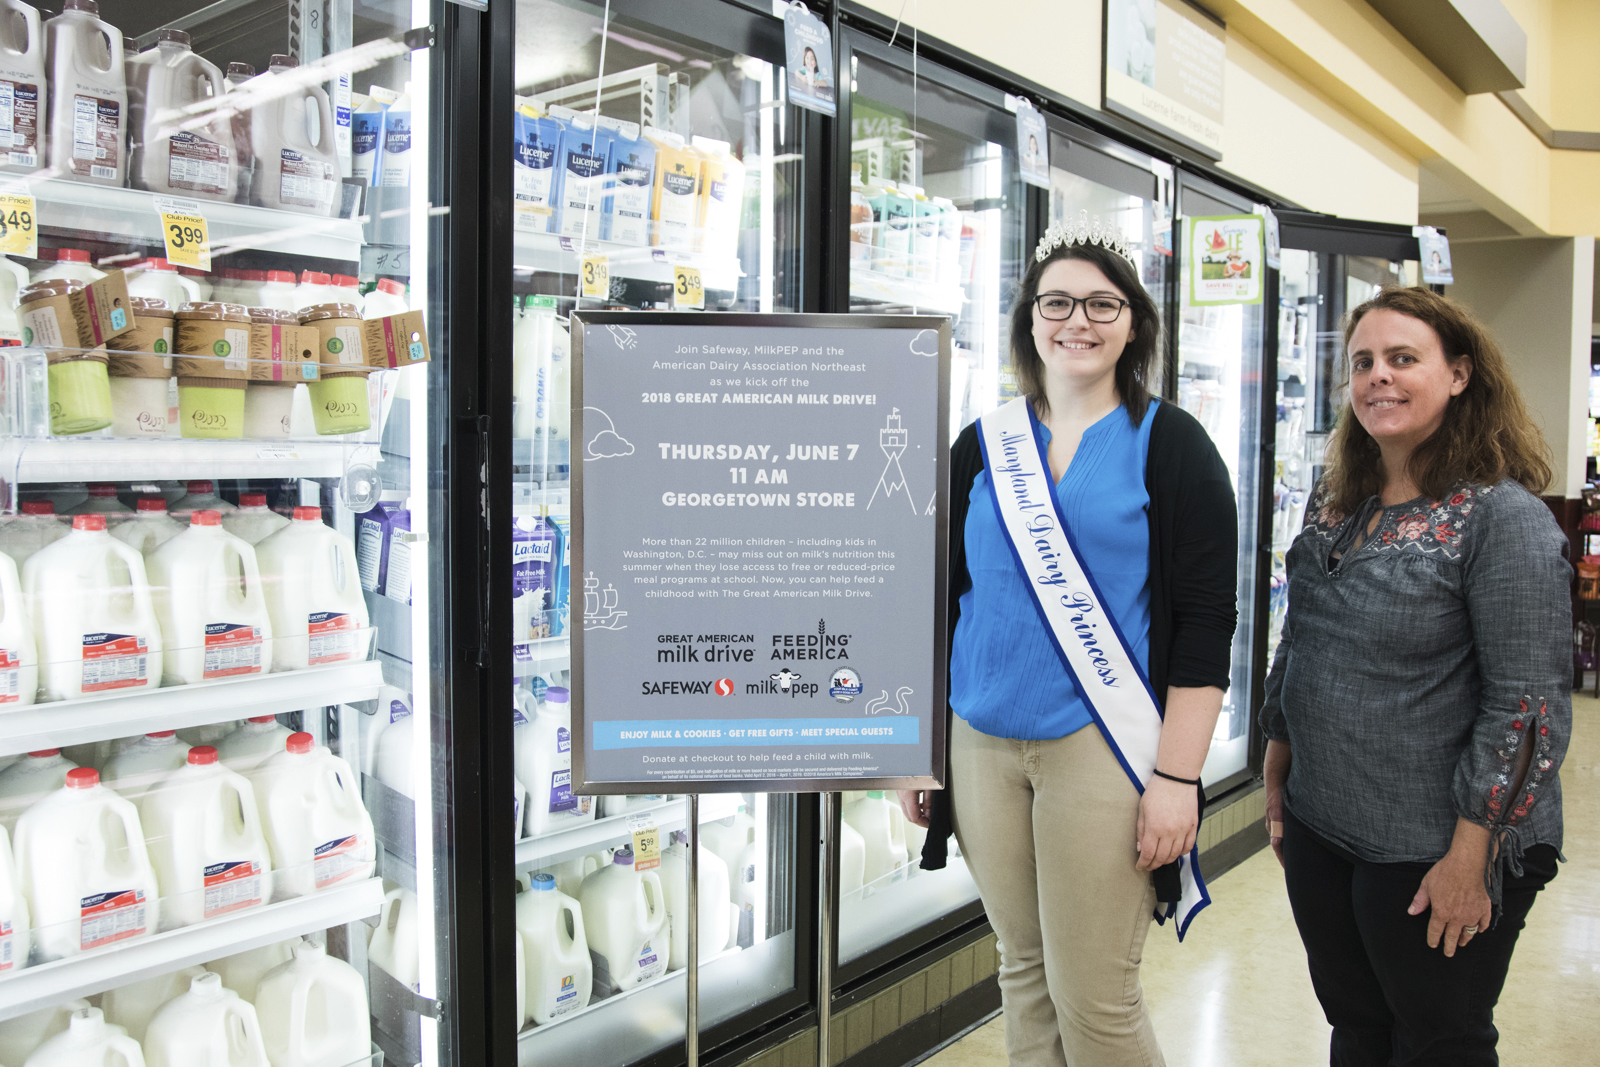 MARYLAND DAIRY FARMER, DAIRY PRINCESS HELP GET MILK TO FAMILIES IN